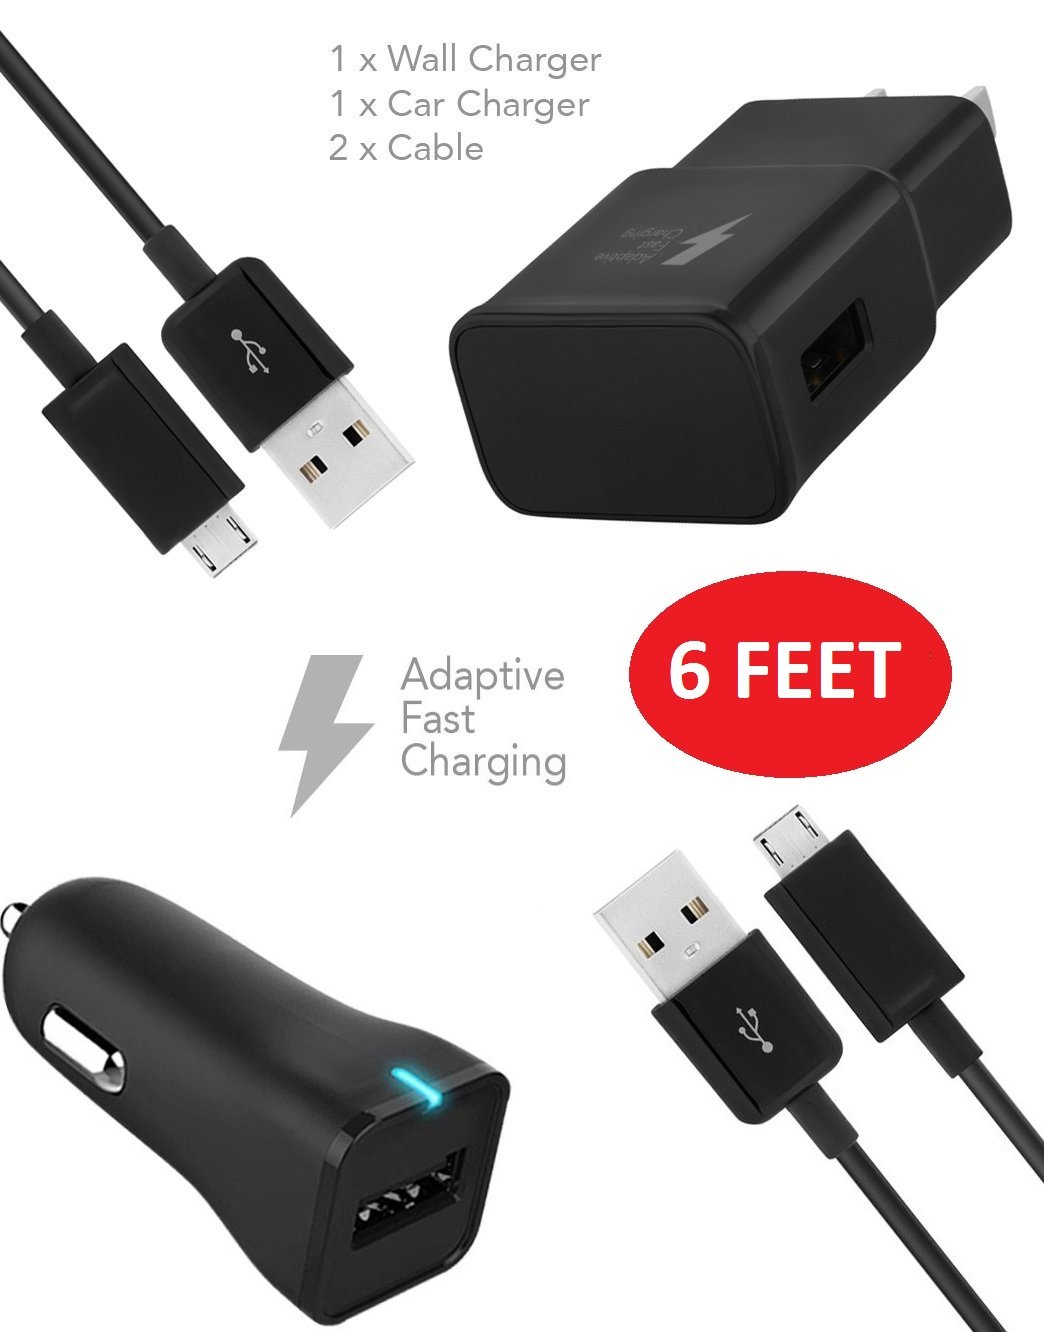 BlackBerry Leap Charger (6 FEET) Micro USB 2.0 Cable Kit by TruWire - {Wall Charger + Car Charger + 2 Cable} True Digital Adaptive Fast Charging uses dual voltages for up to 50% faster charging!